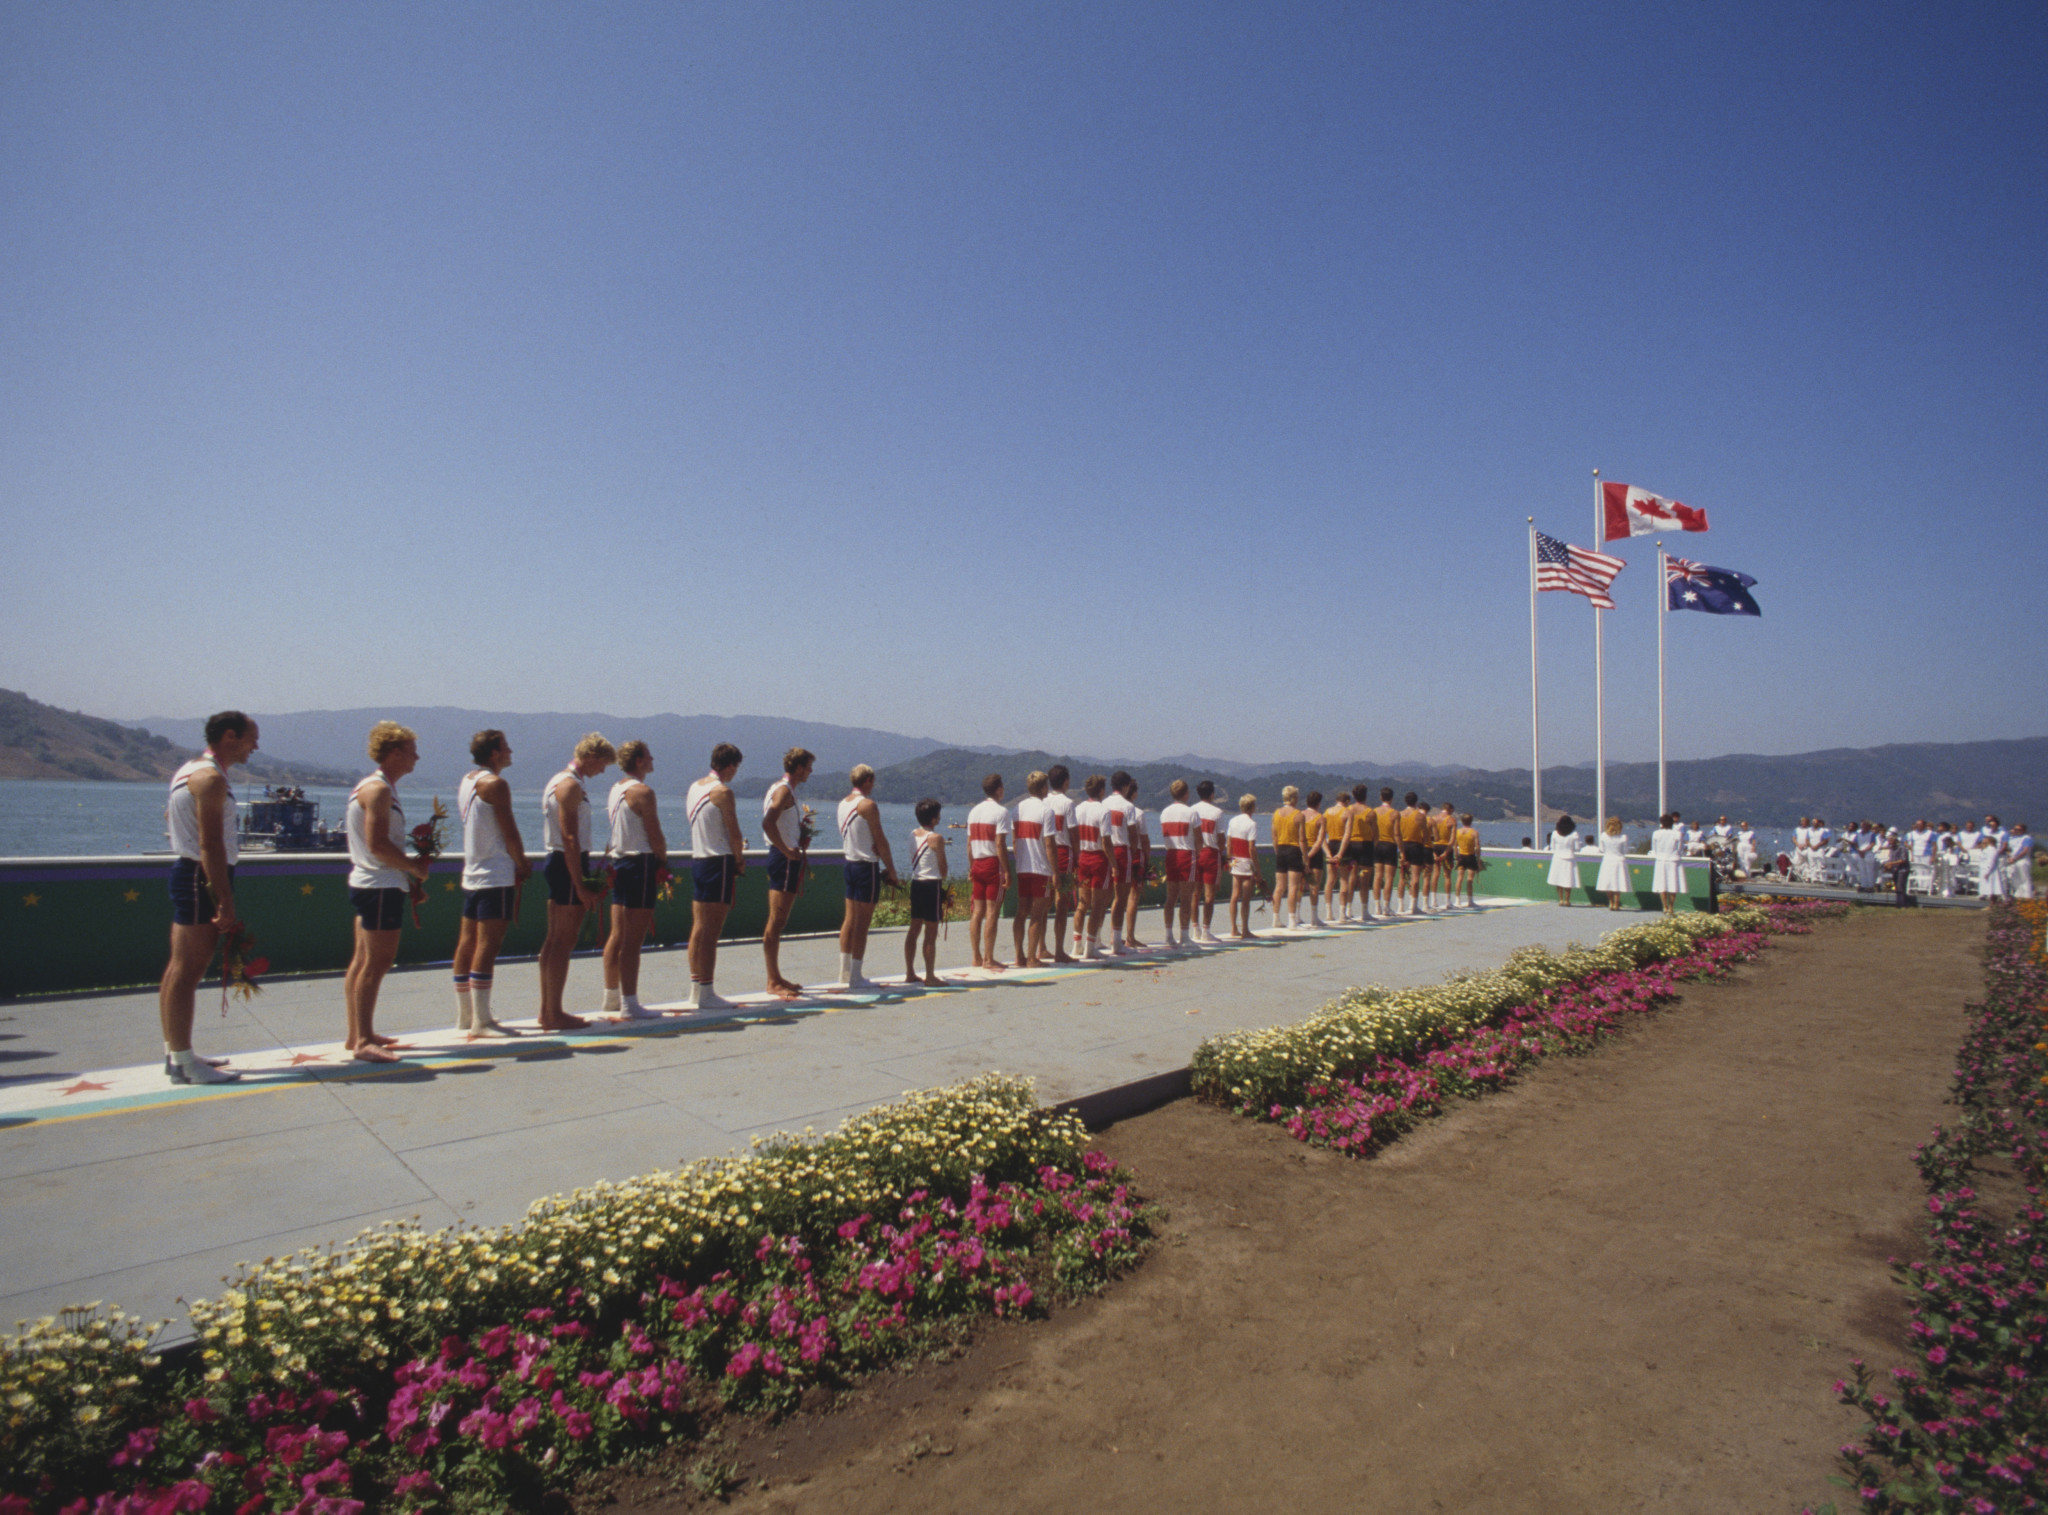 Extreme weather takes toll on Los Angeles 1984 Olympic rowing venue